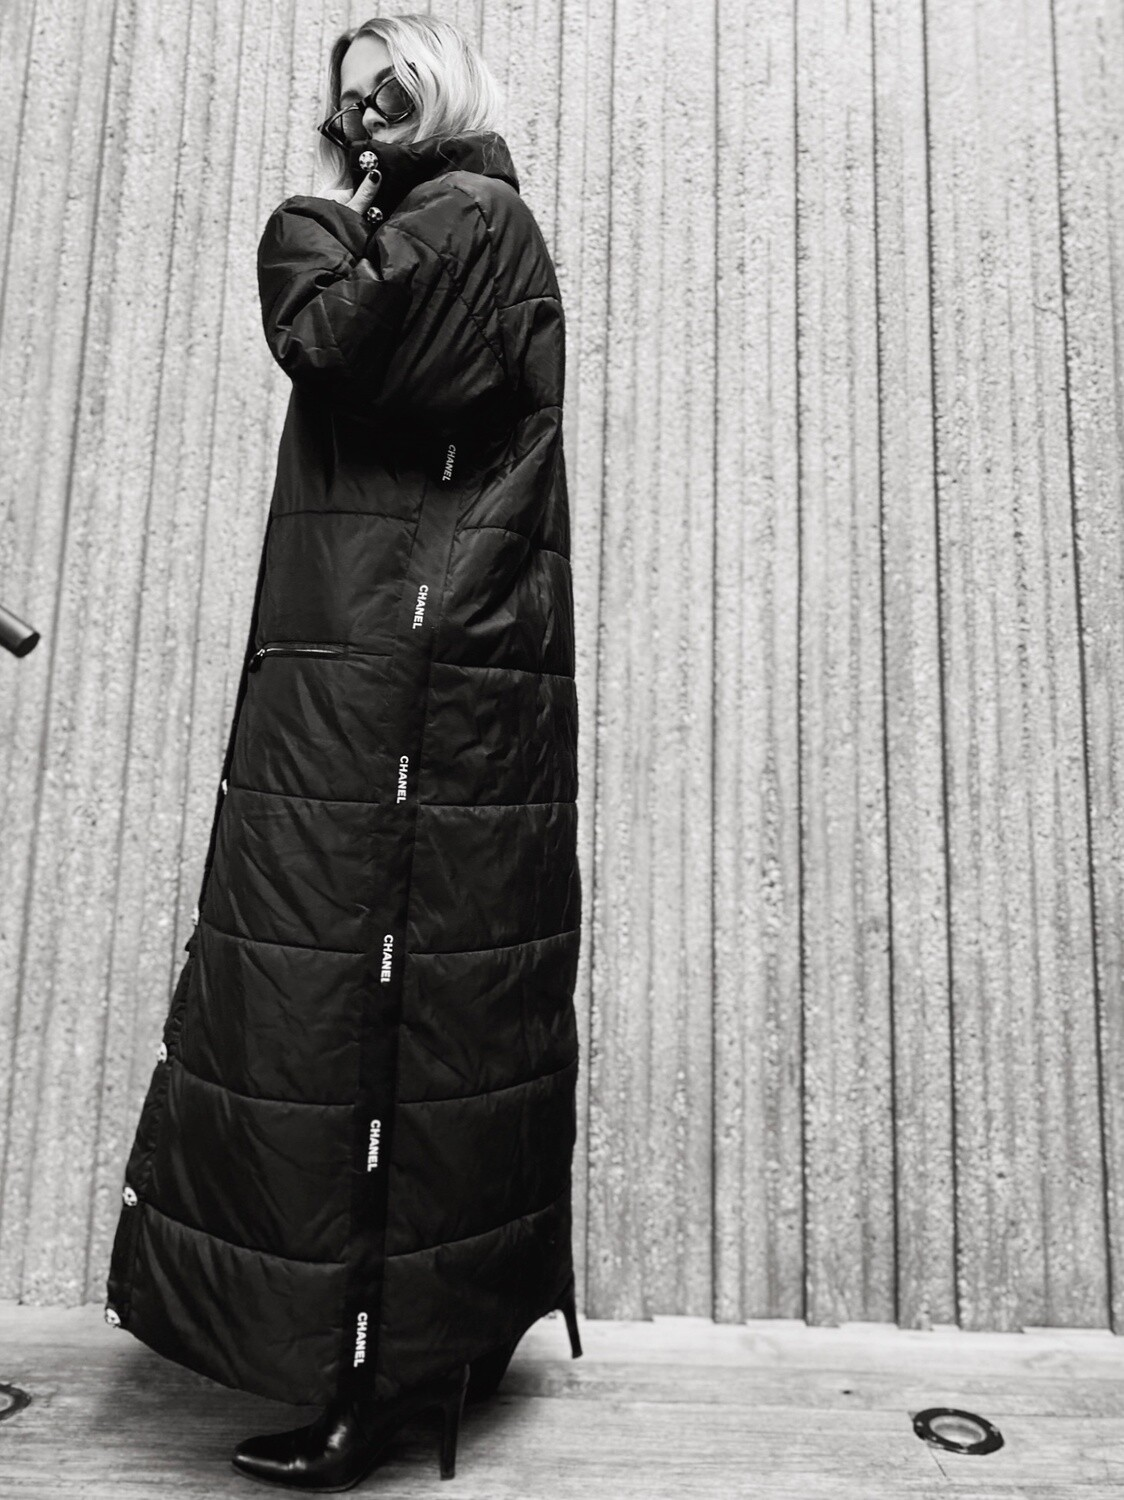 CHANEL LETTER MONOGRAM RIBBON VINTAGE BLACK PUFFER COAT WITH GRIPOIX JEWELED BUTTONS - 1995 COLLECTION